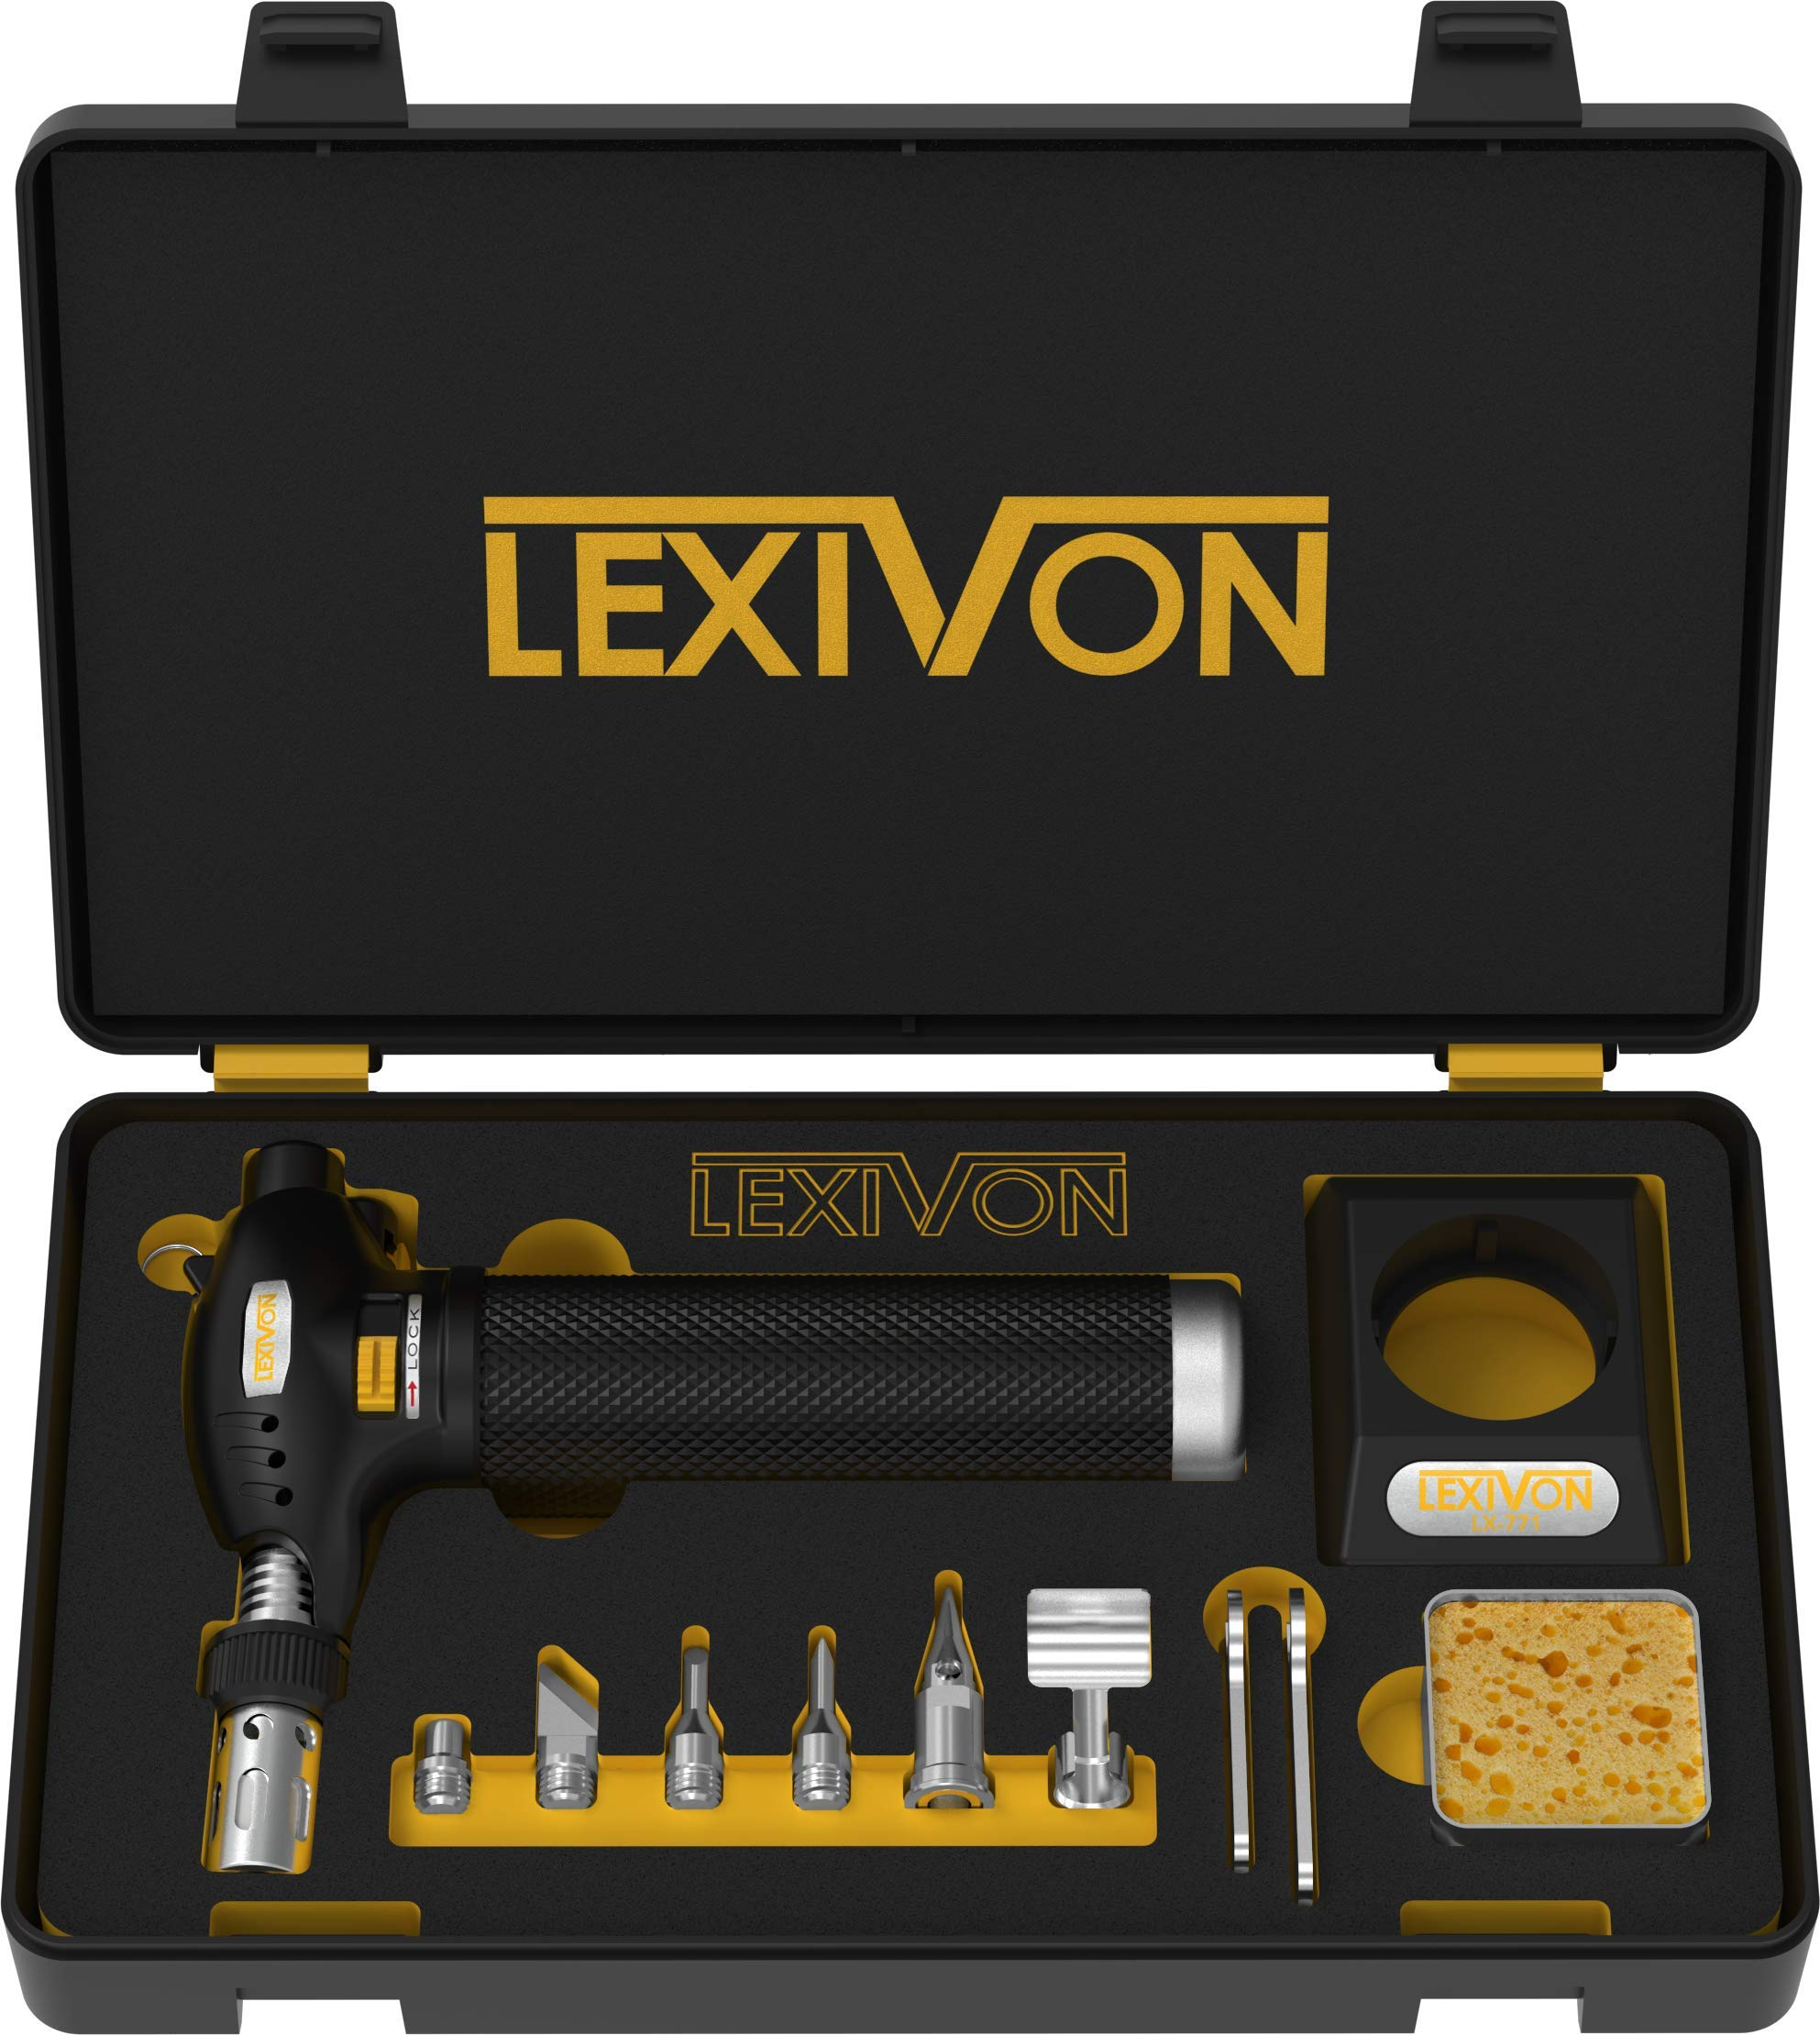 LEXIVON Butane Torch Multi-Function Kit | Premium Self-Igniting Soldering Station with Adjustable Flame | Pro Grade 125-Watt Equivalent (LX-771) by LEXIVON